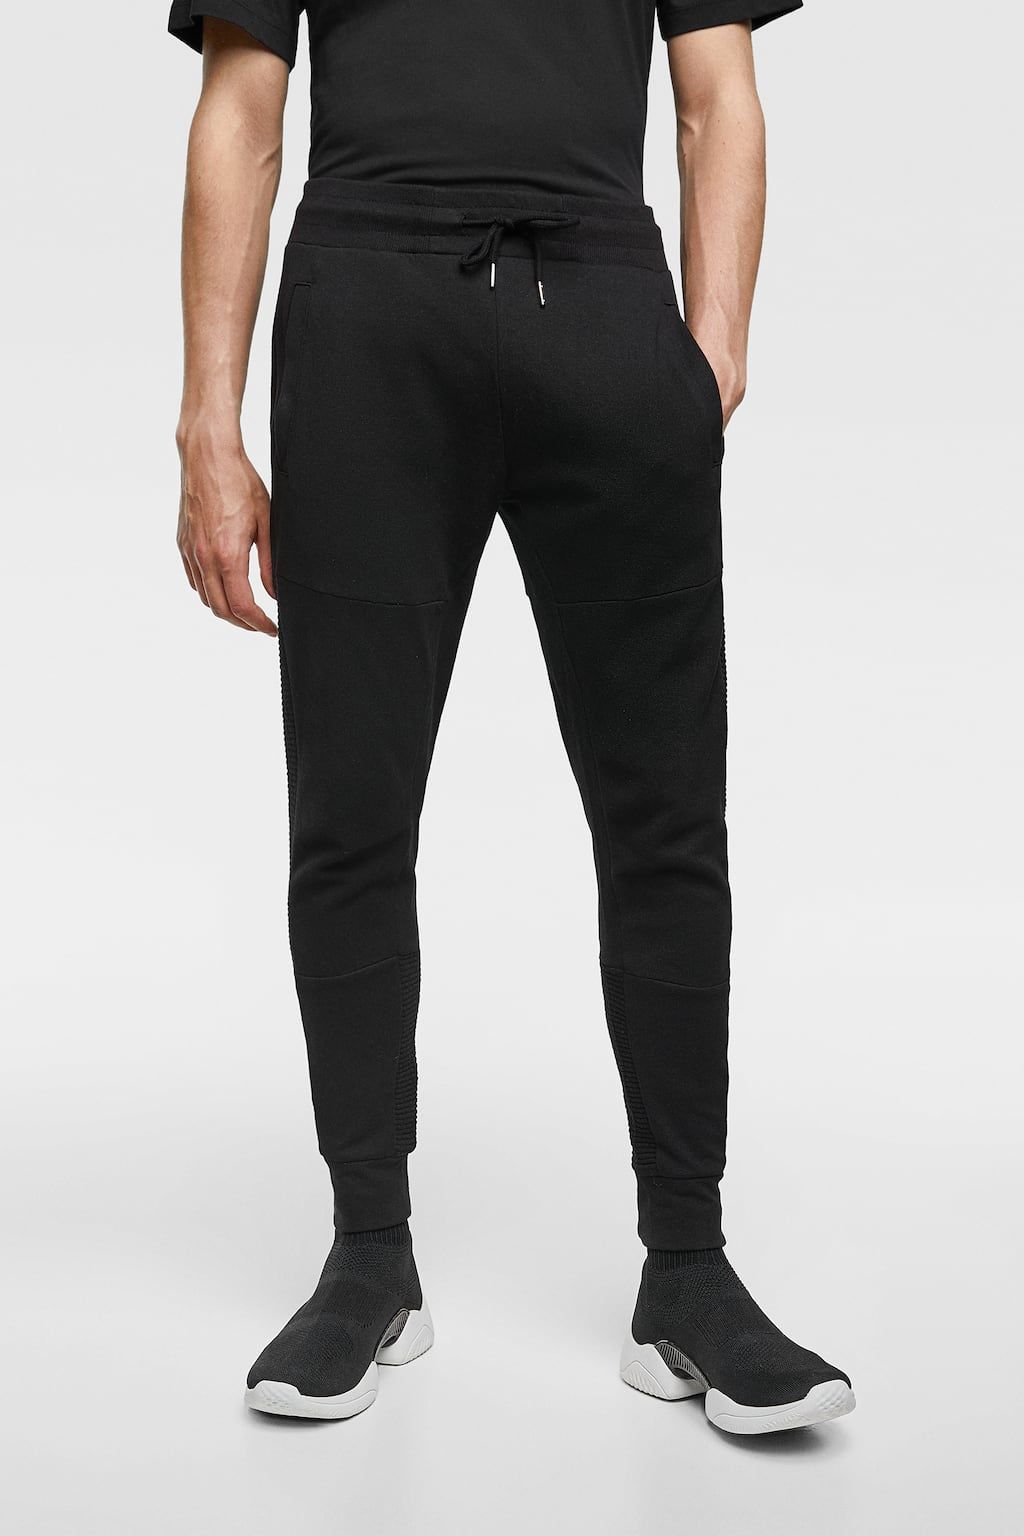 Clothing & Accessories Black Latest Collection Of Puma Evostripe Mens Track Pants Clothing, Shoes & Accessories